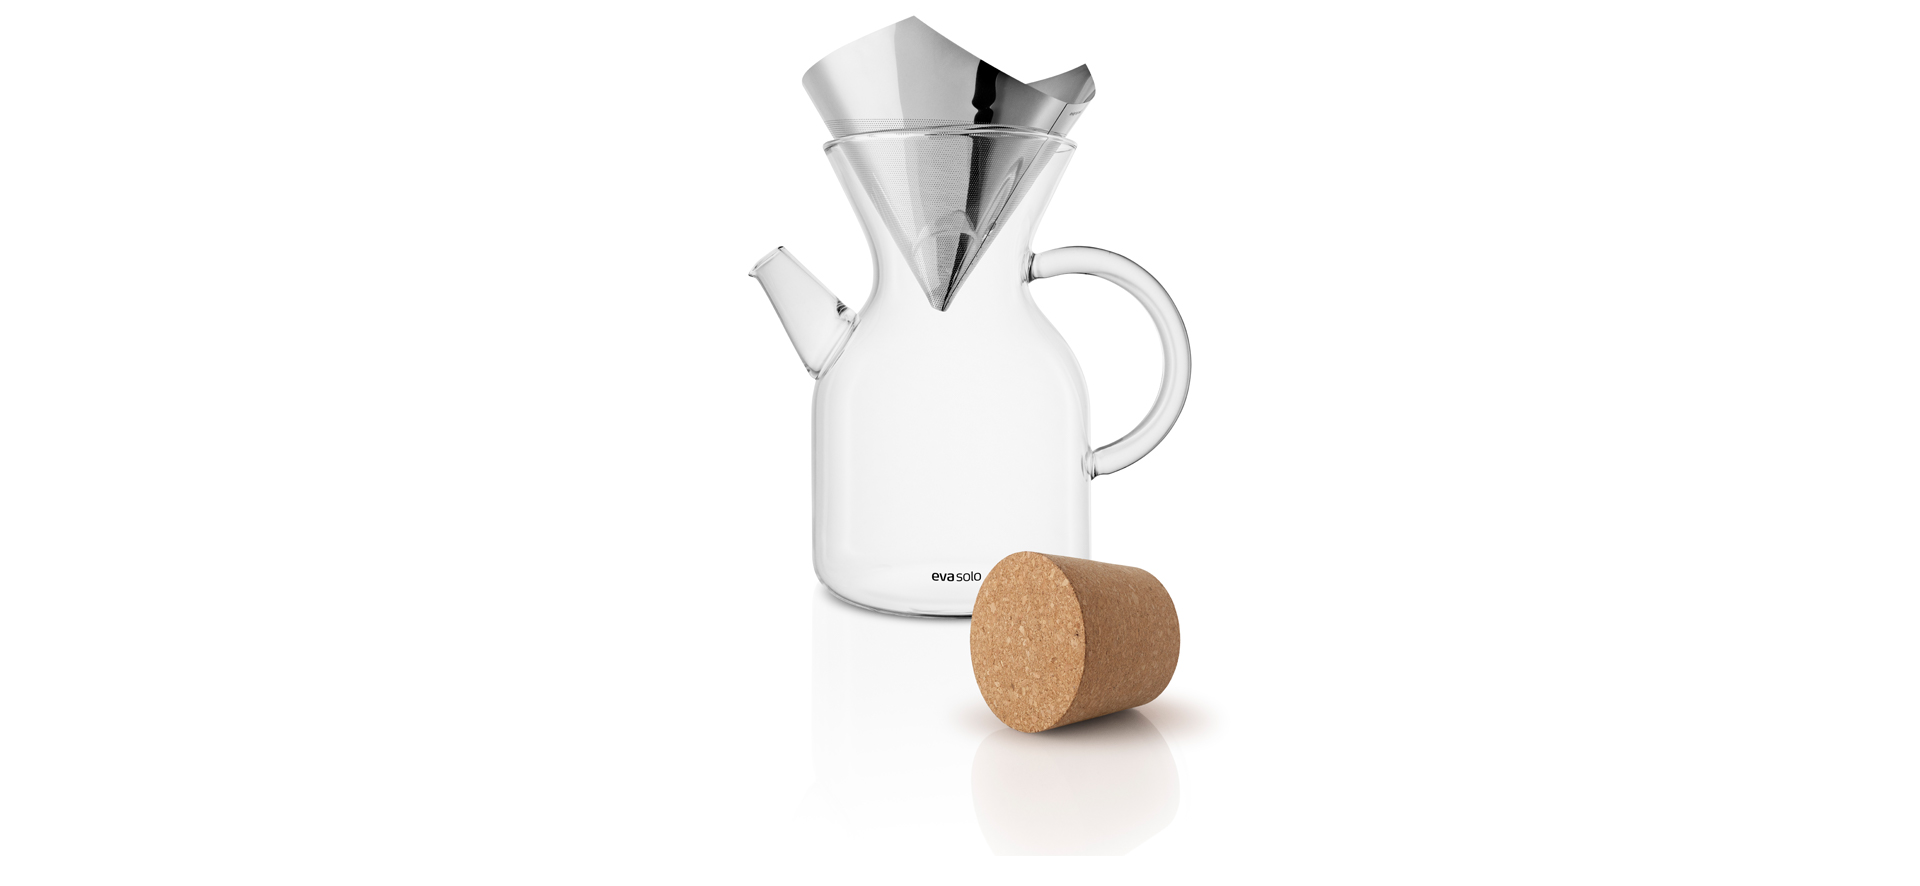 Pour-over coffee-maker - 502710